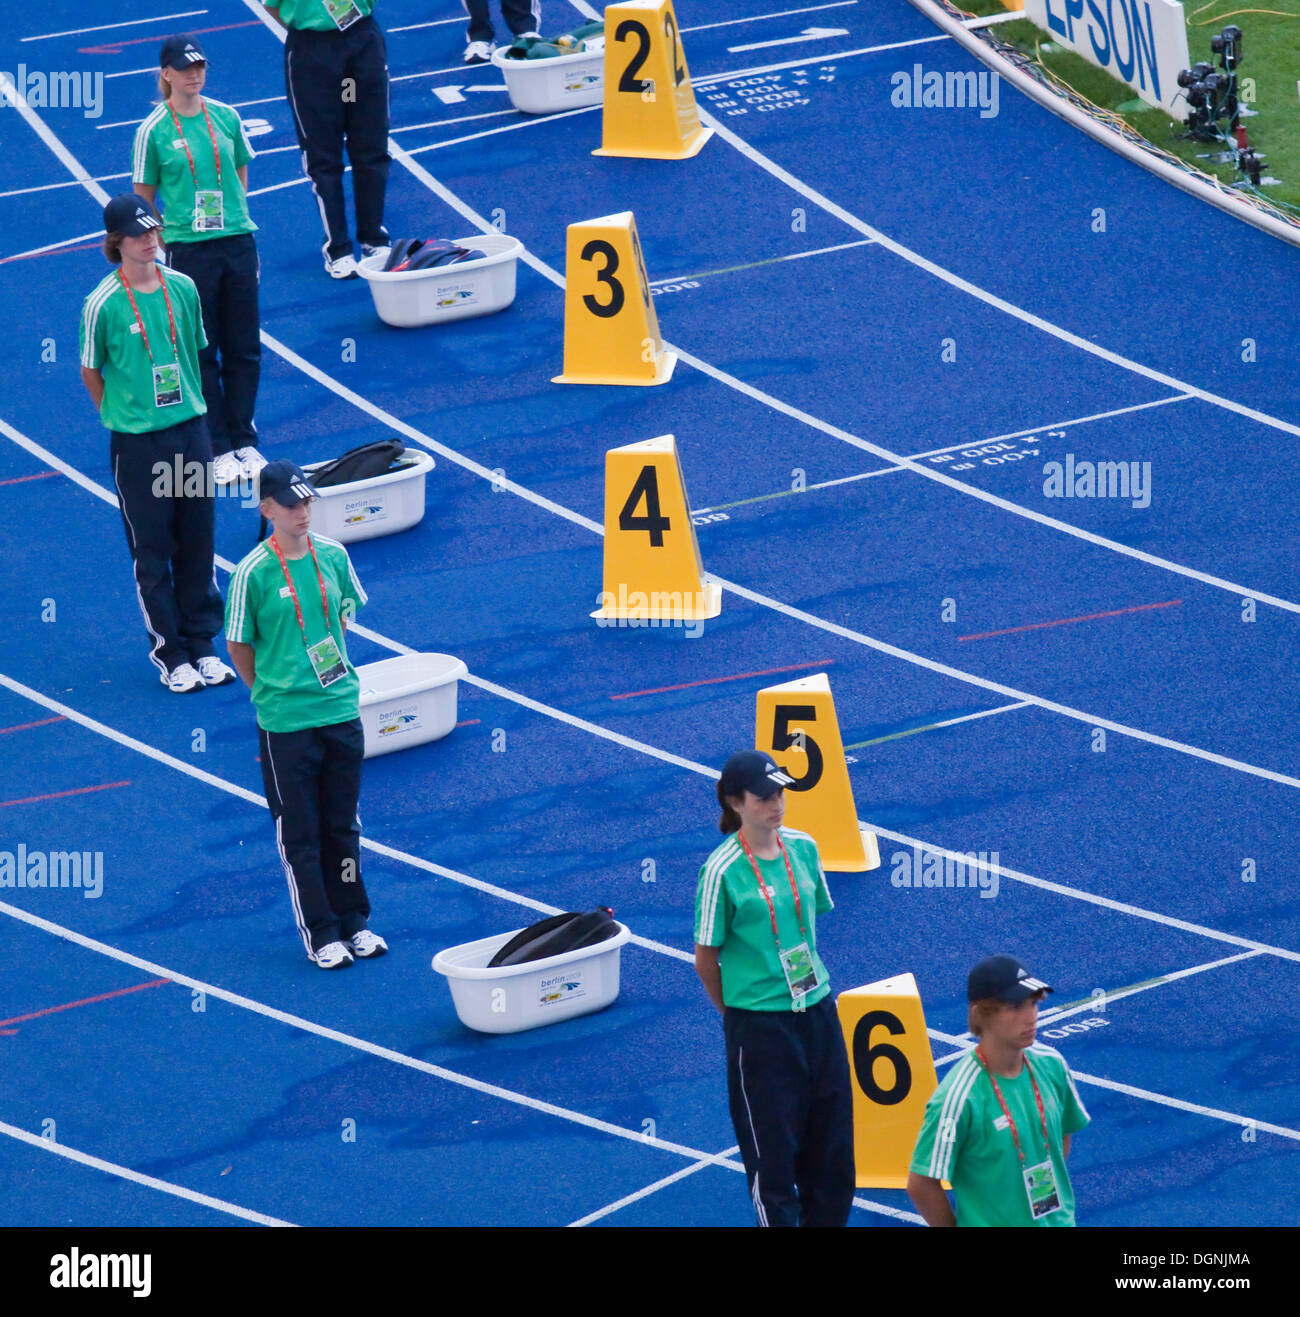 Volunteers at the World Championships in Athletics, IAAF, 2009, in Berlin's Olympic Stadium, Berlin - Stock Image